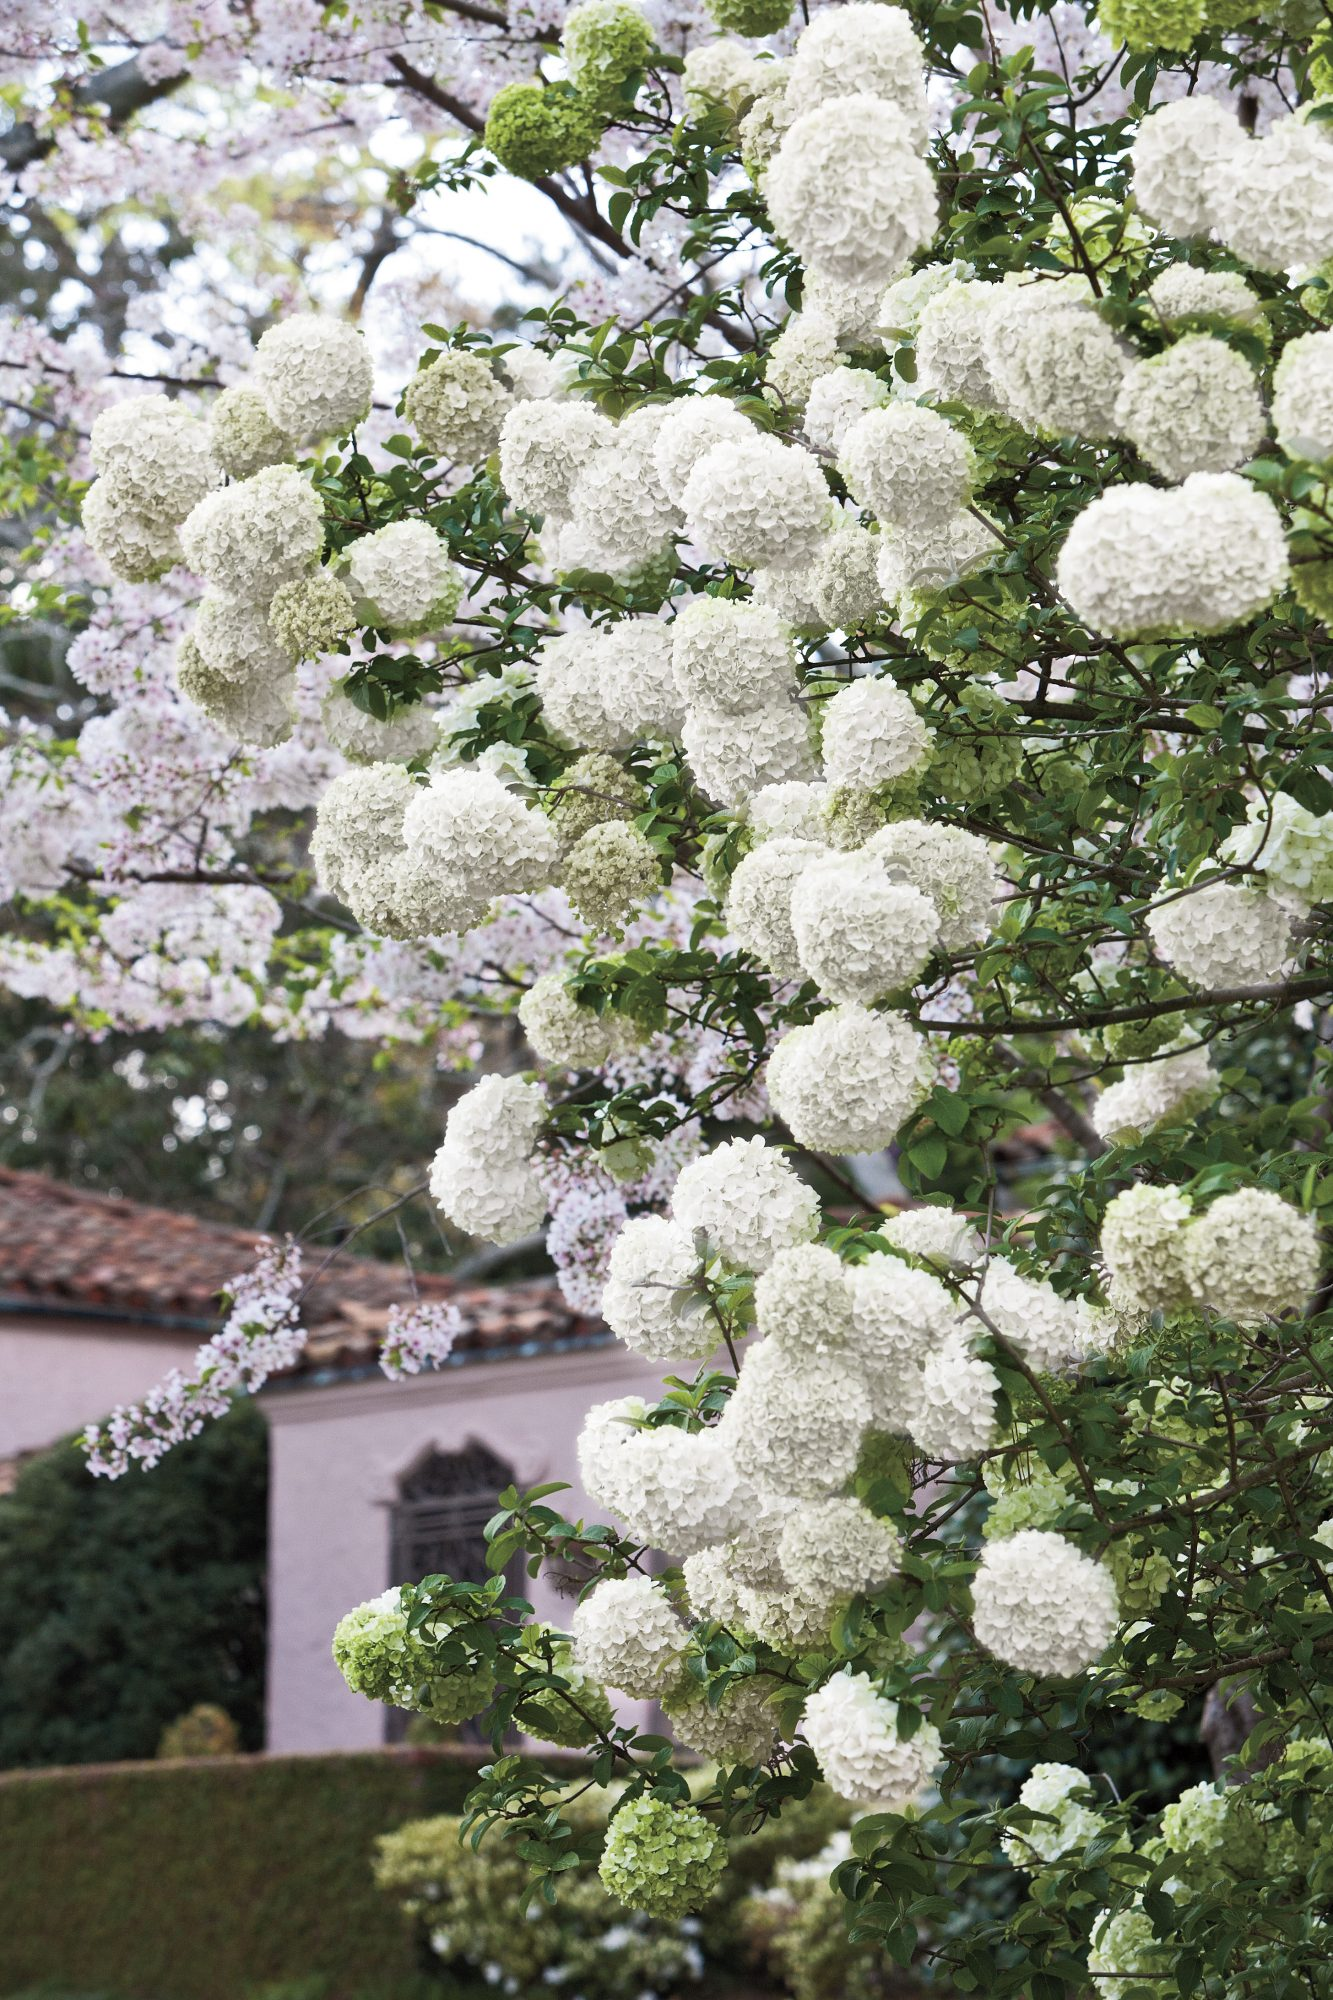 7. Grow Blooming Shrubs